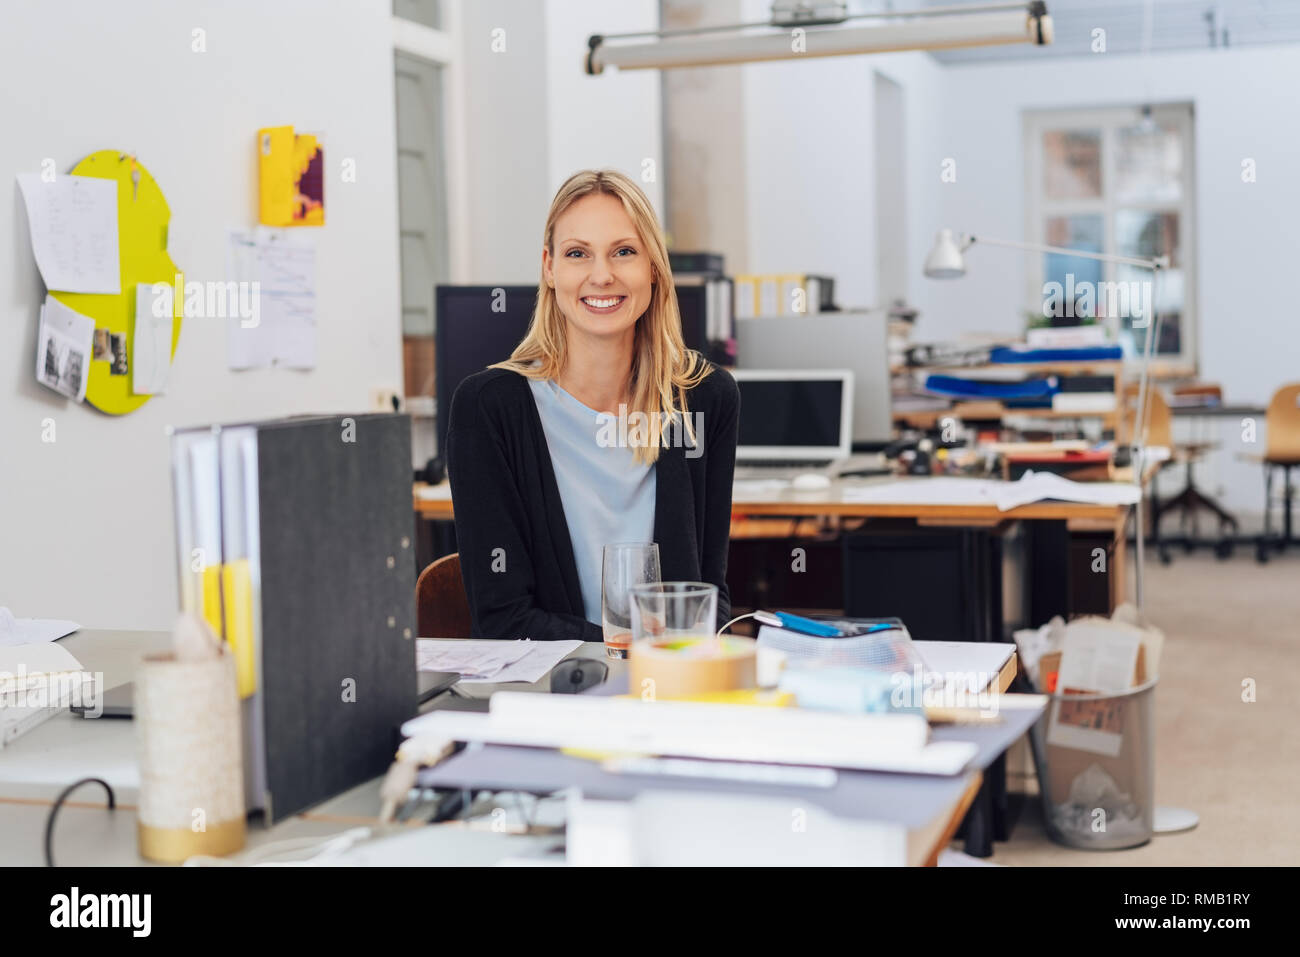 Happy young woman portrait sitting at the desk, alone in open space office interior, smiling and looking at camera. Messy desk workplace with document - Stock Image